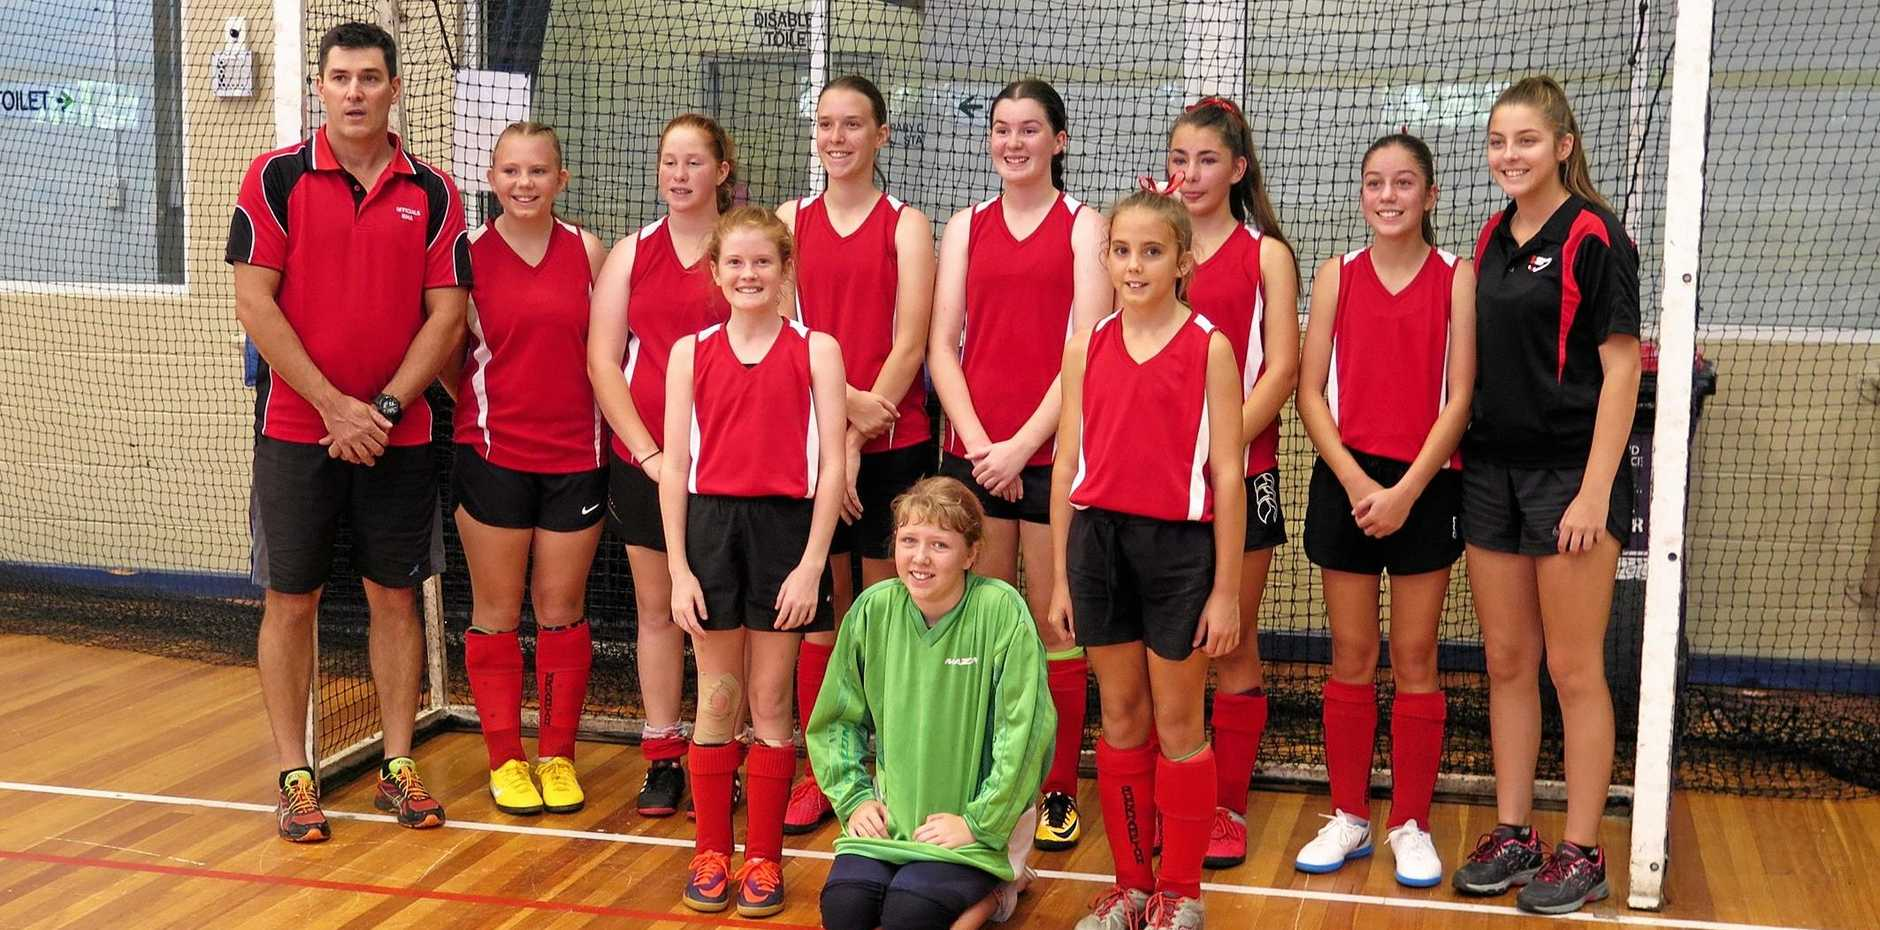 The Rockhampton Red team finished runners-up in Division 2 in the Queensland under-13 indoor hockey challenge.